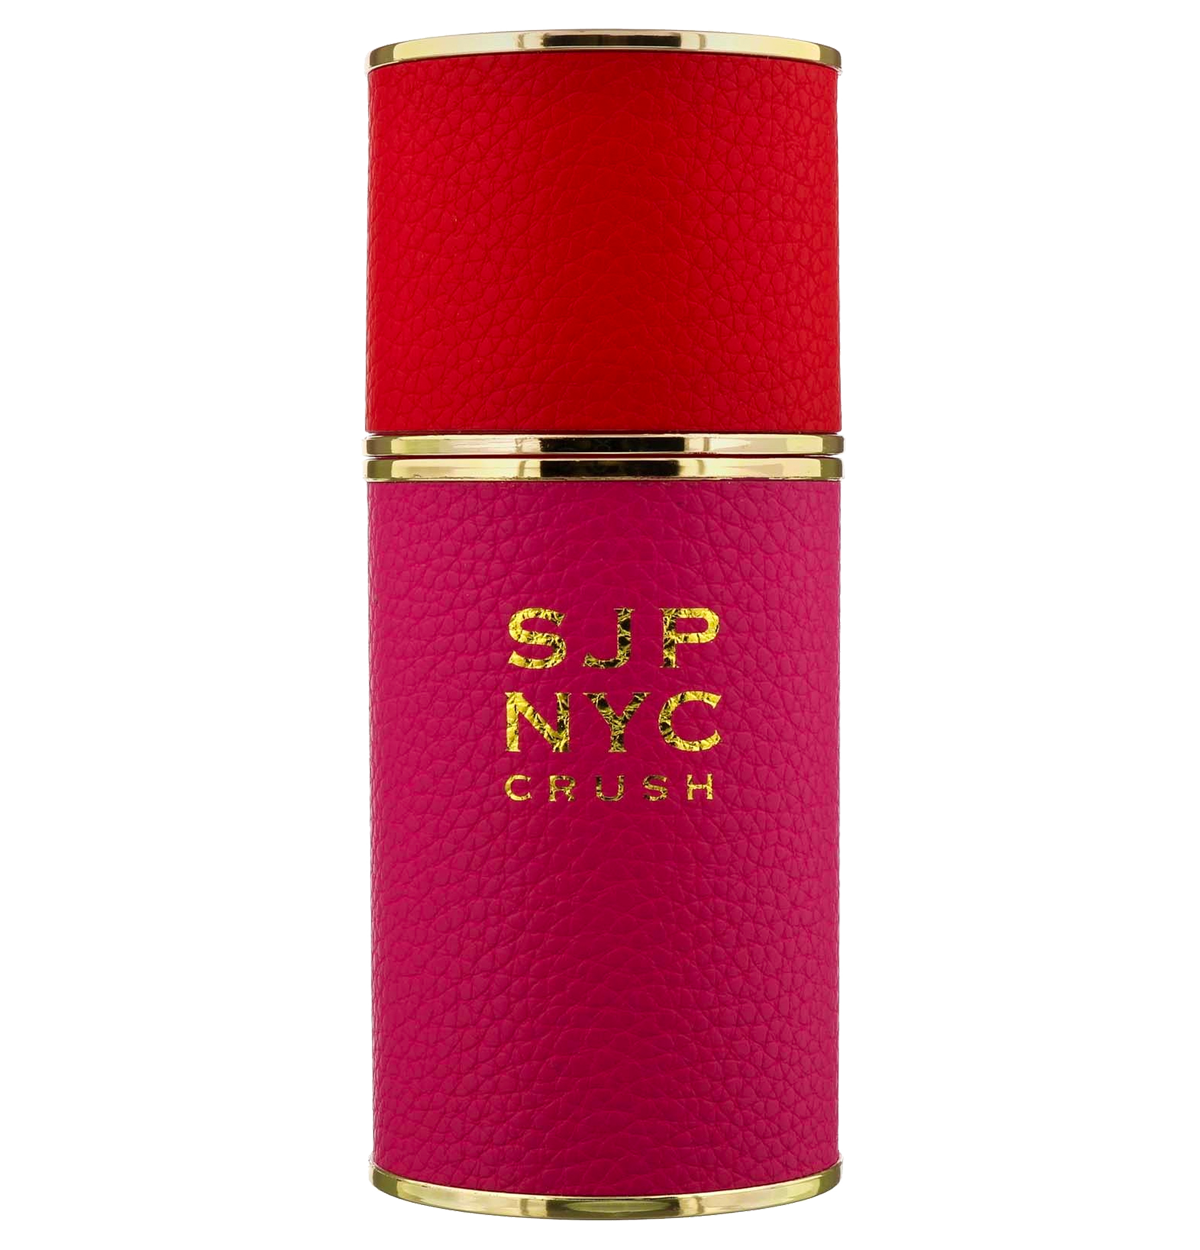 NYC Crush Eau de Parfum Spray